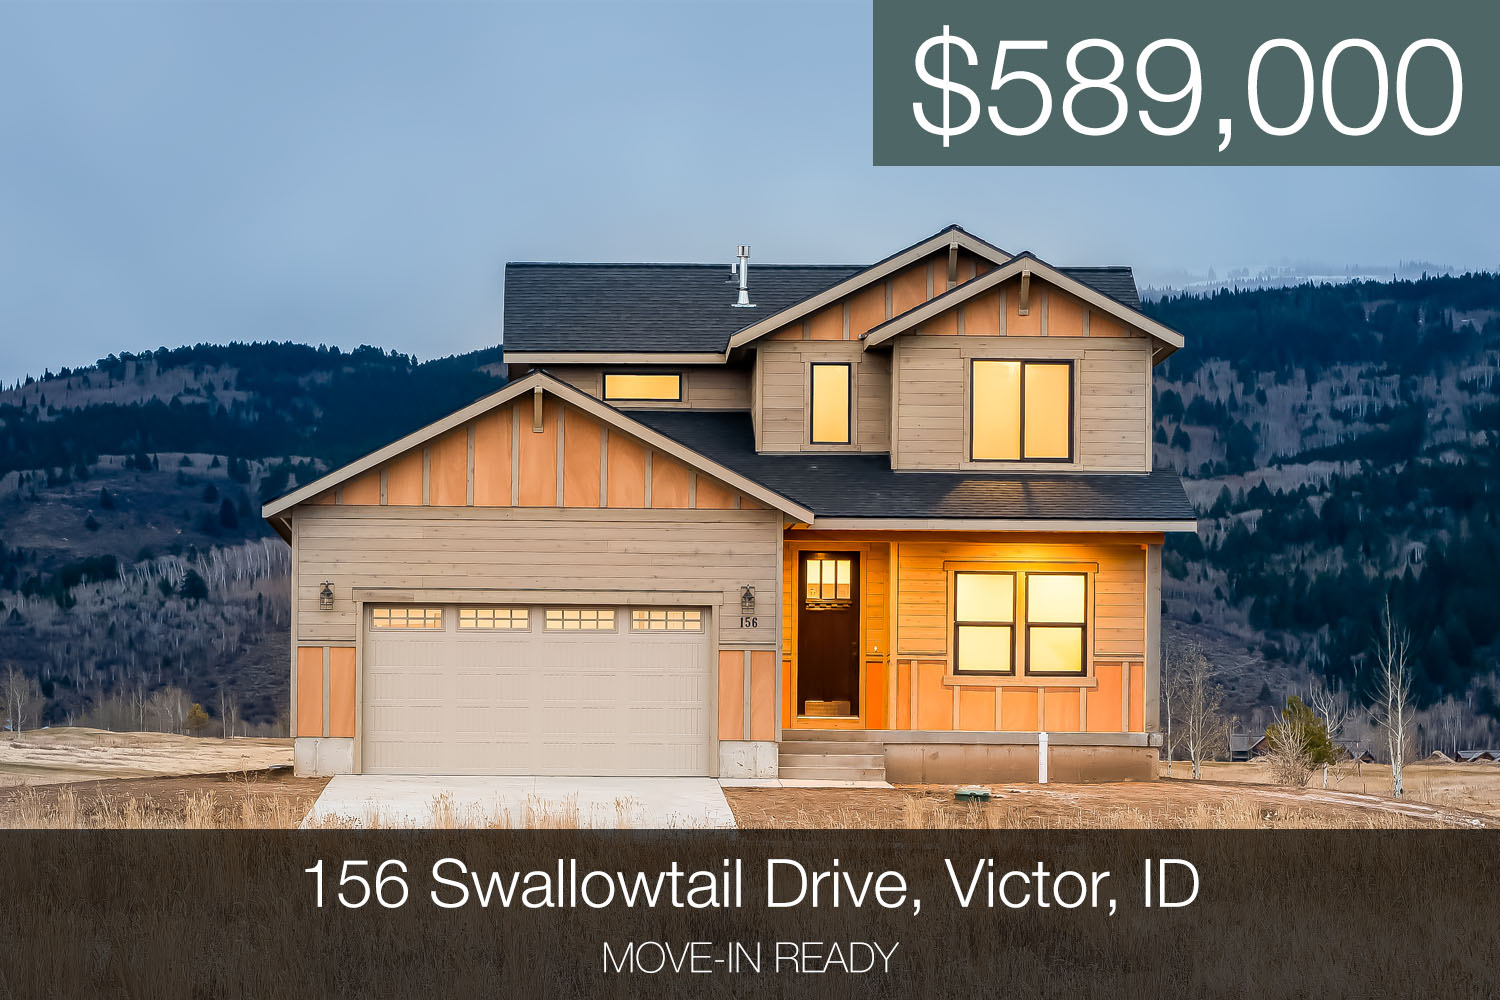 New Homes for sale in driggs idaho